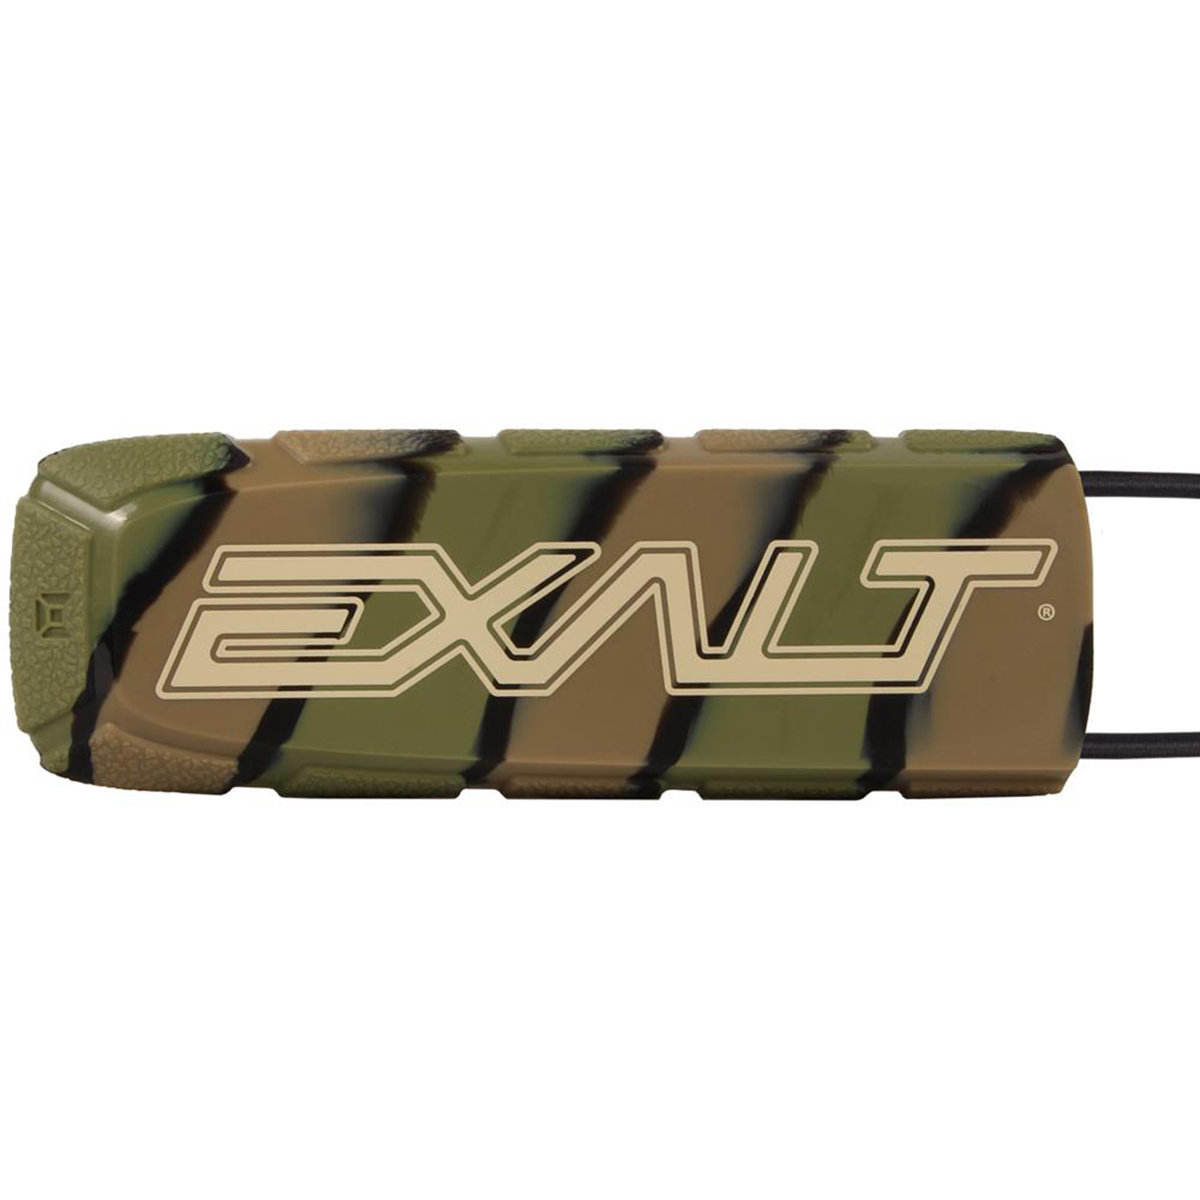 View larger image of Exalt Bayonet Barrel Cover